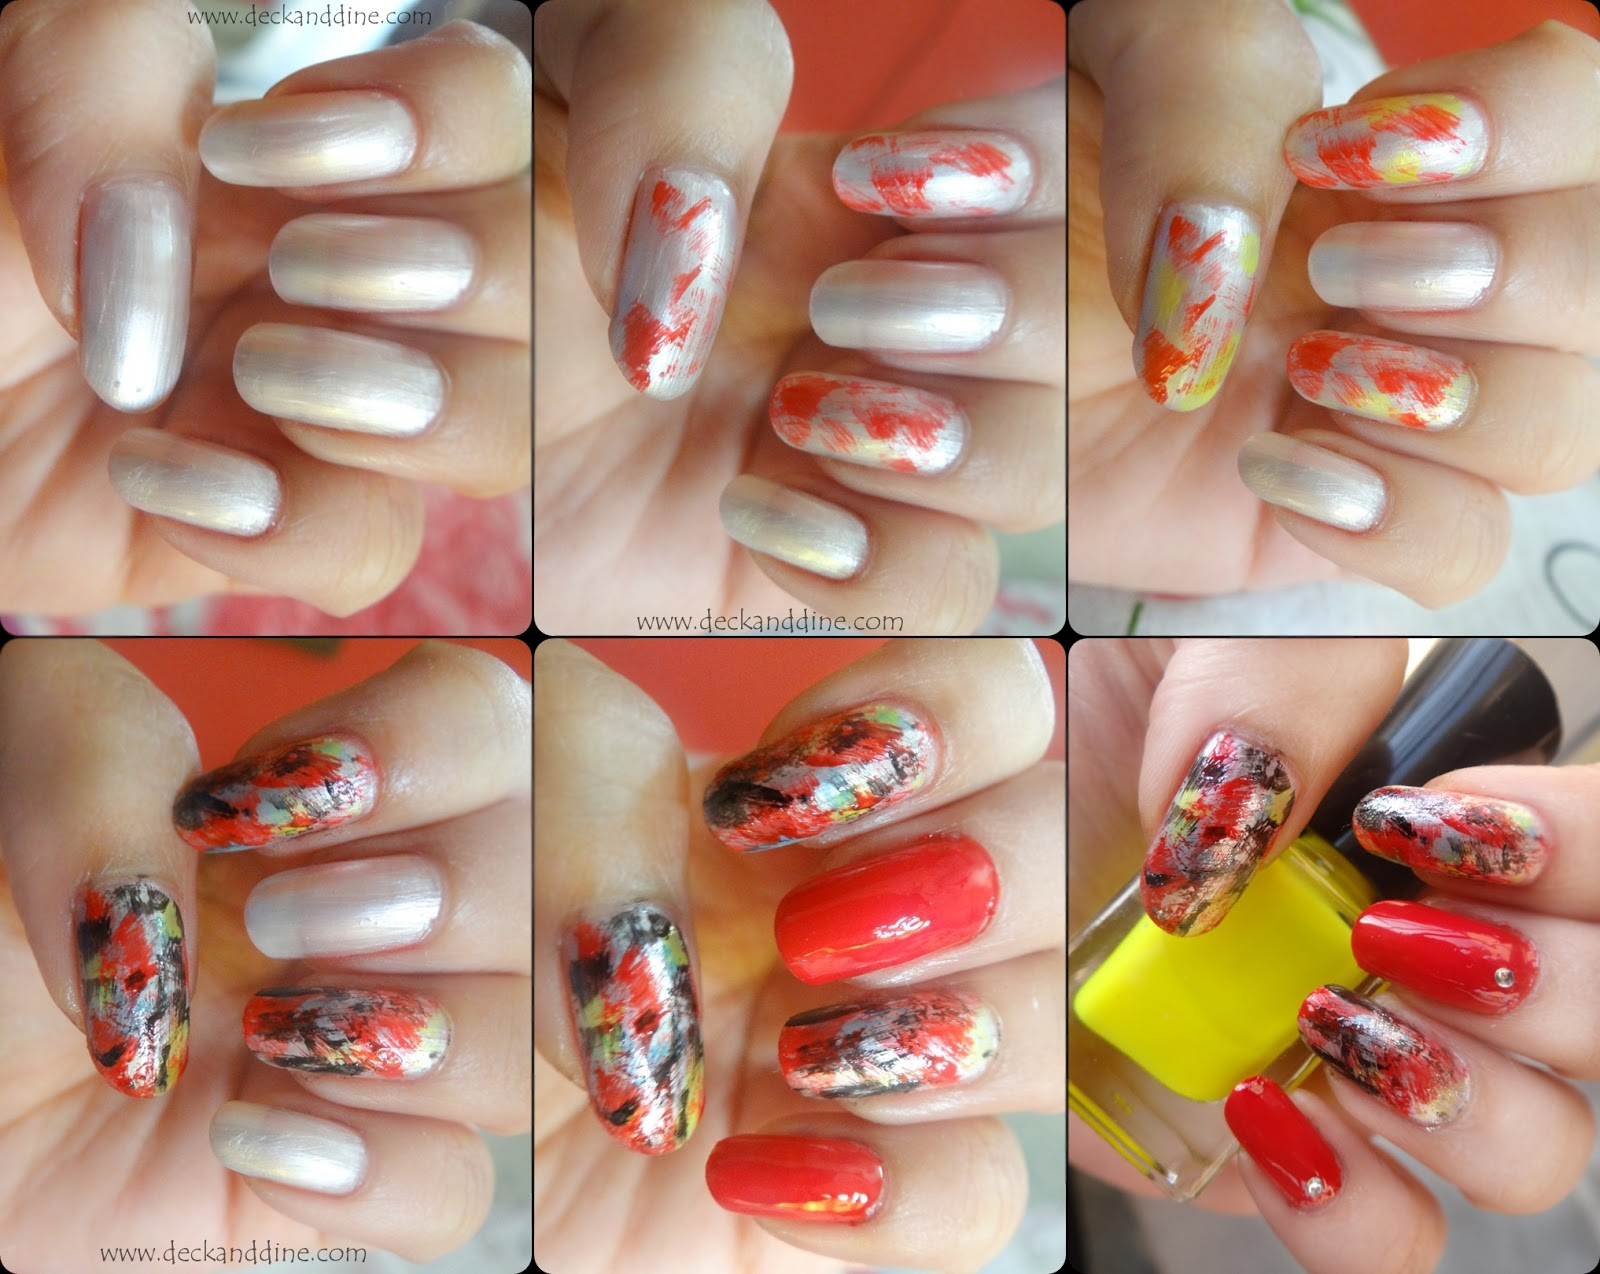 Dry Brush Nail Art Tutorial With Step By Step Pictures Deck And Dine